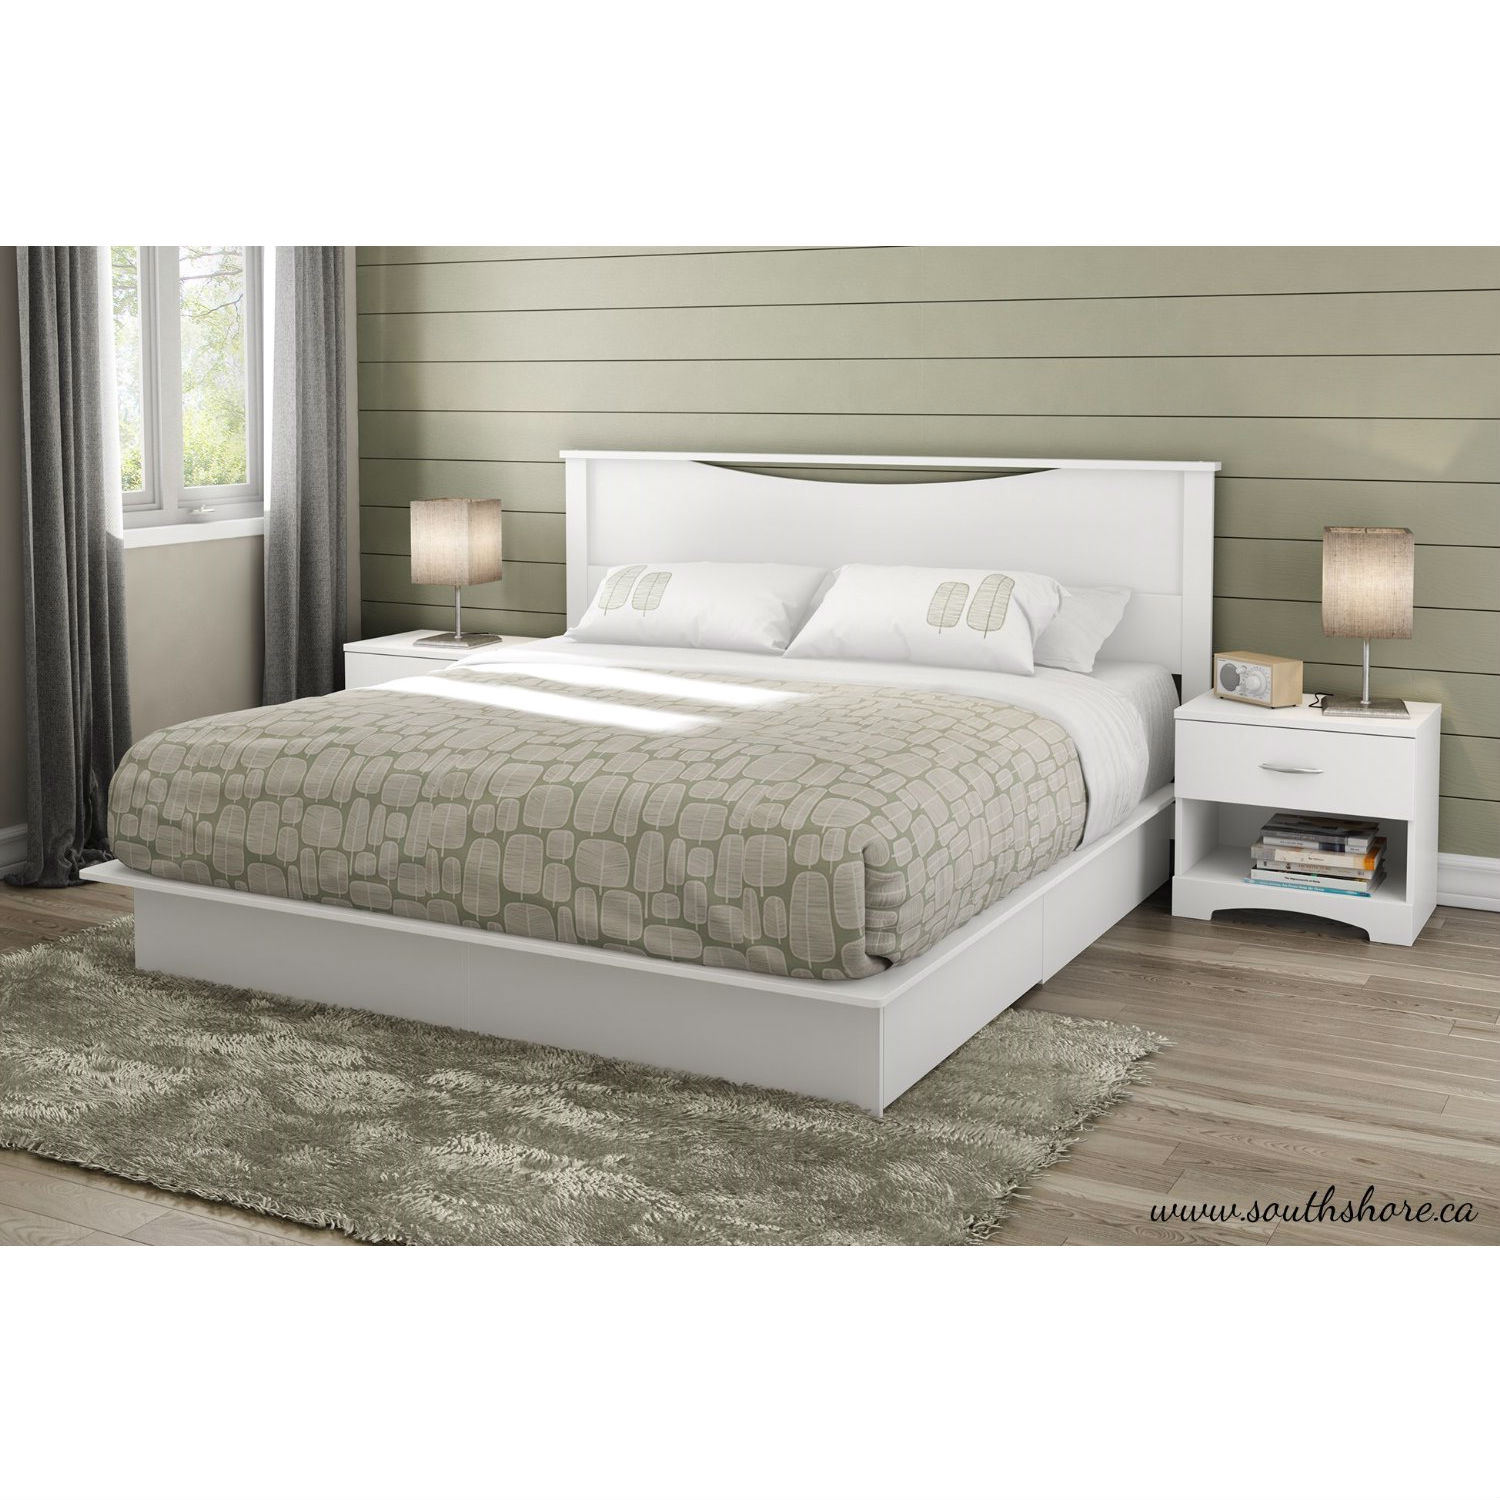 King Size Modern Platform Bed With Storage Drawers In